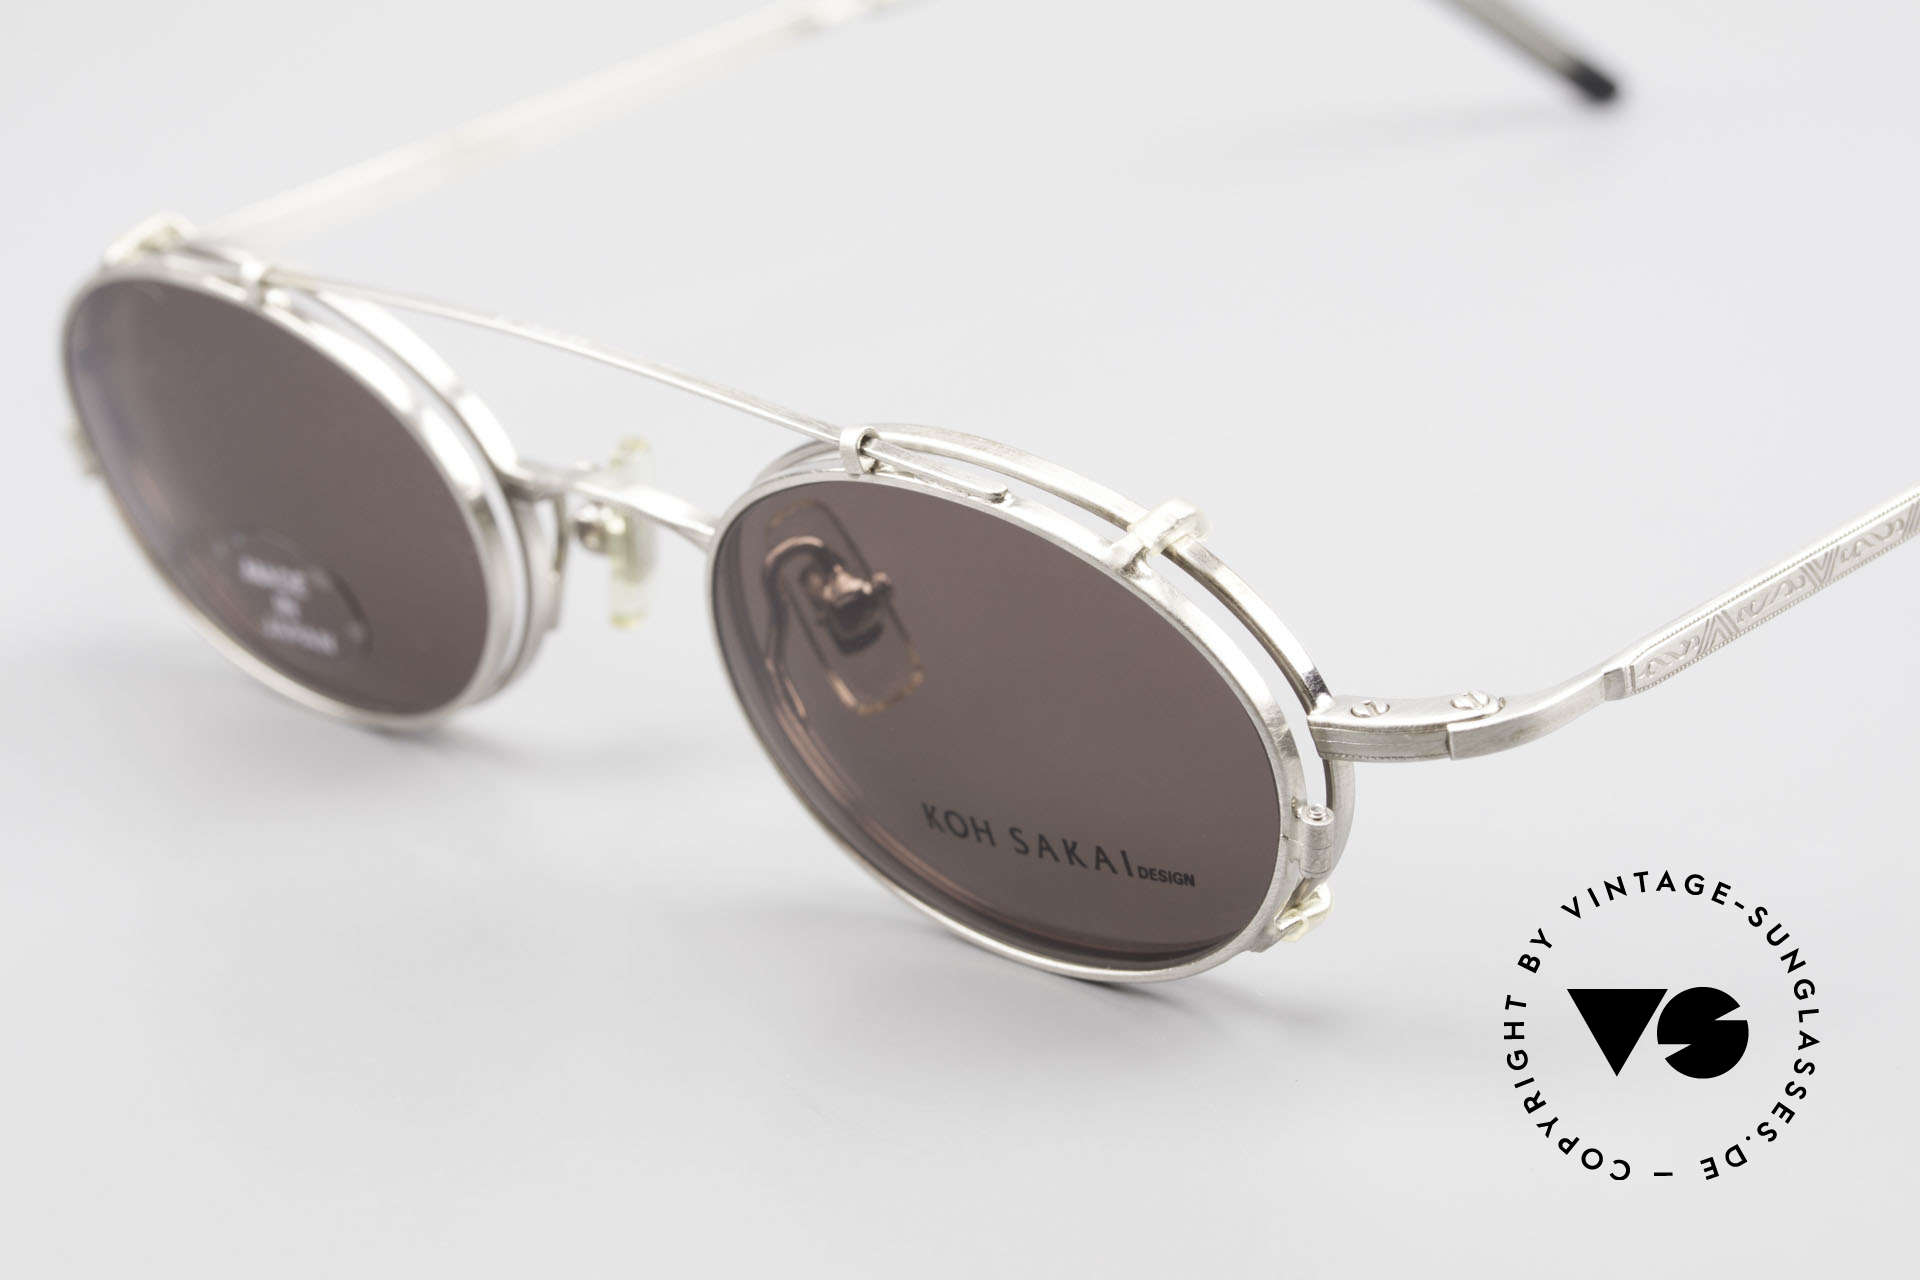 Koh Sakai KS9781 Vintage Metal Glasses Clip On, made in the same factory like Oliver Peoples & Eyevan, Made for Men and Women